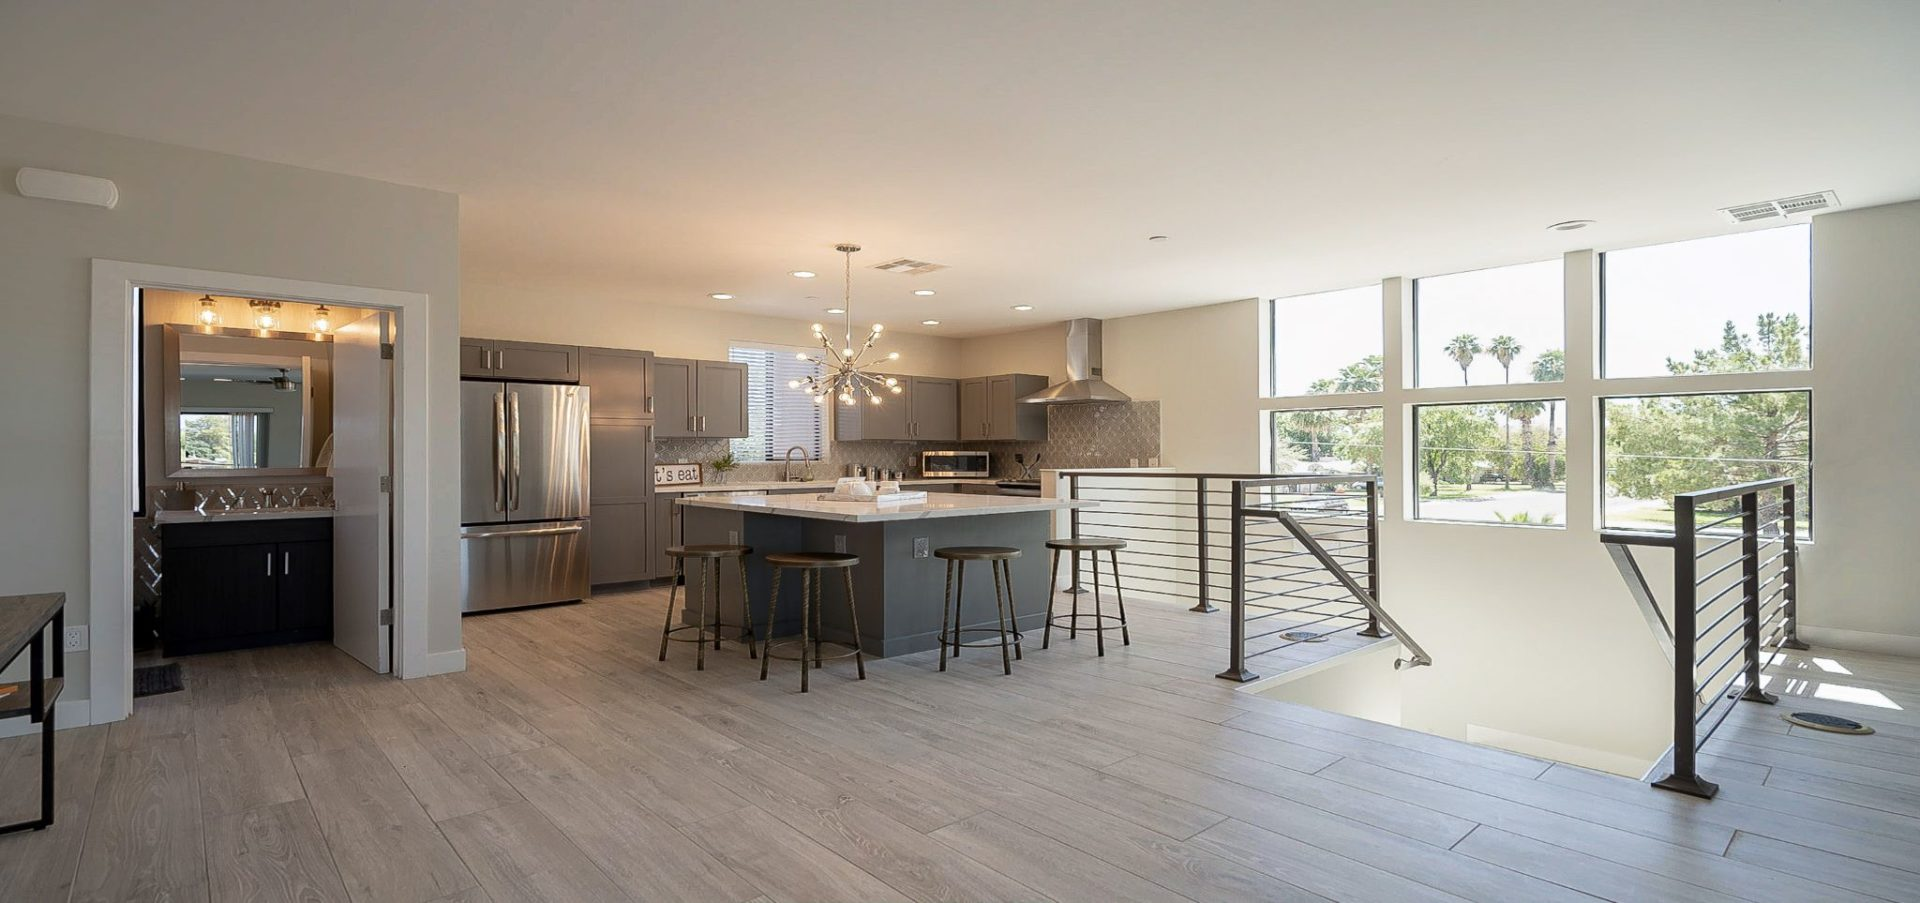 An up-to-date, modern kitchen renovated through real estate alternative investments